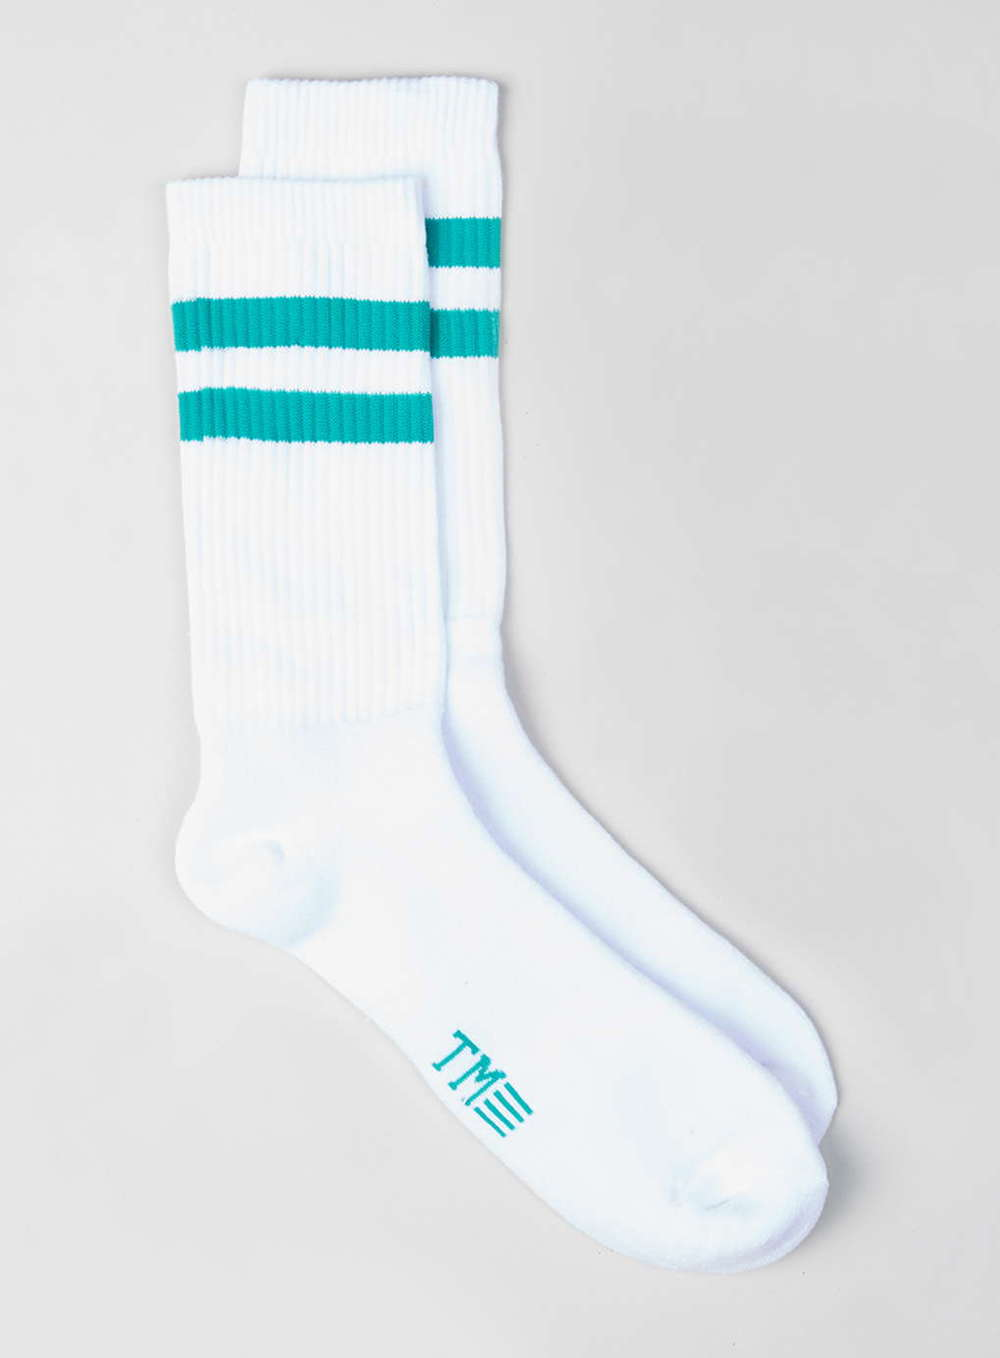 Topman White Tube Sock    $6.00